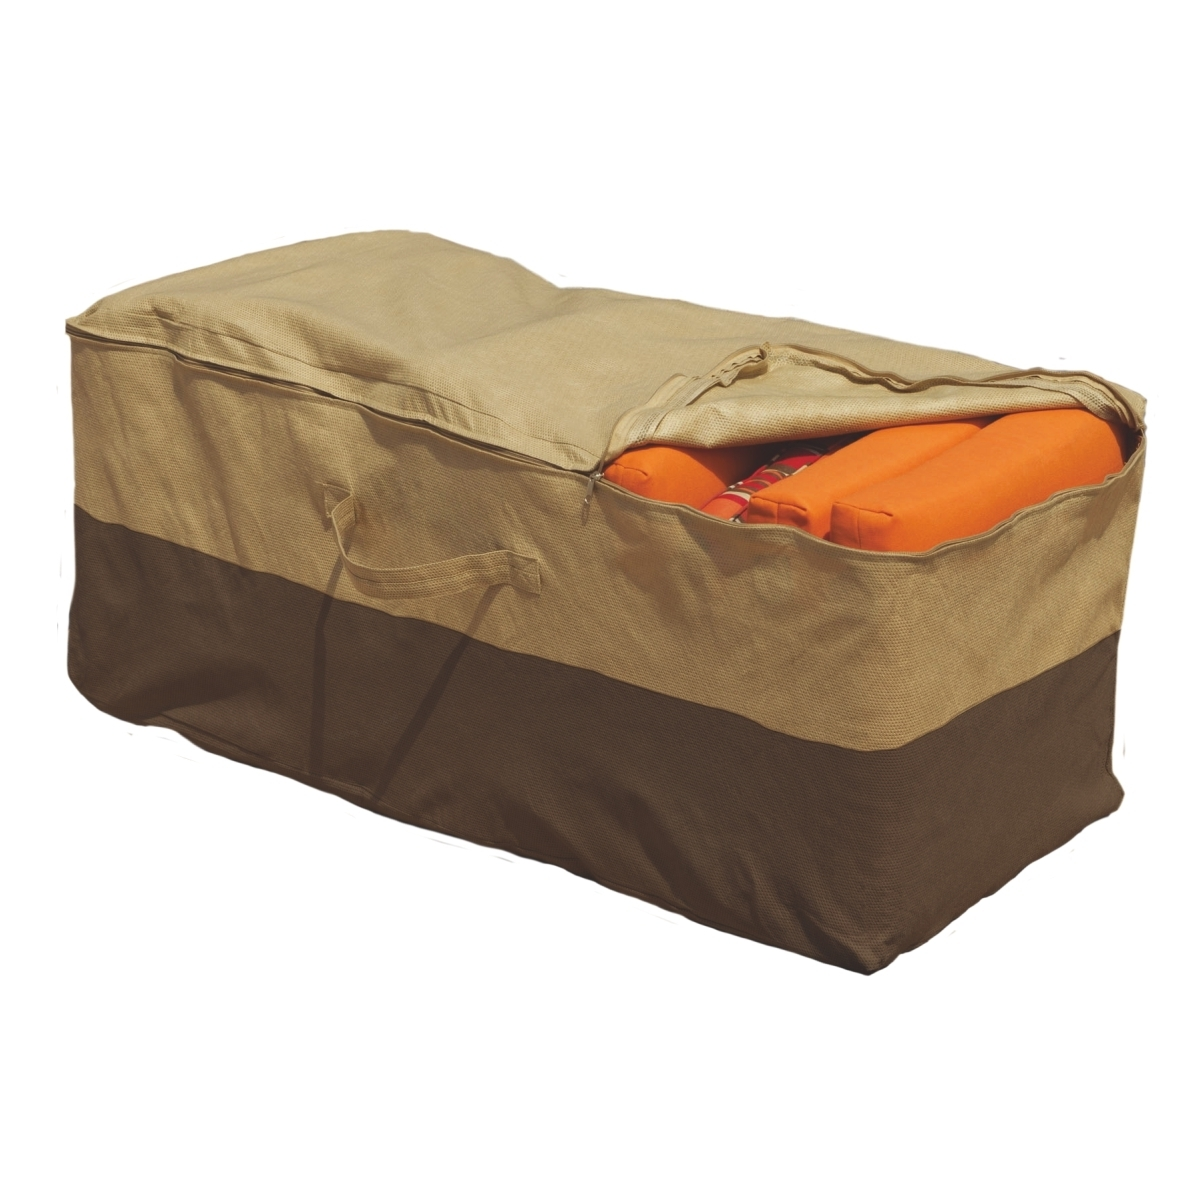 Cushion Bag Outdoor Furniture Roselawnlutheran Within Outdoor Cushion Storage Bags To Save At Outdoor Cushion Storage Bags